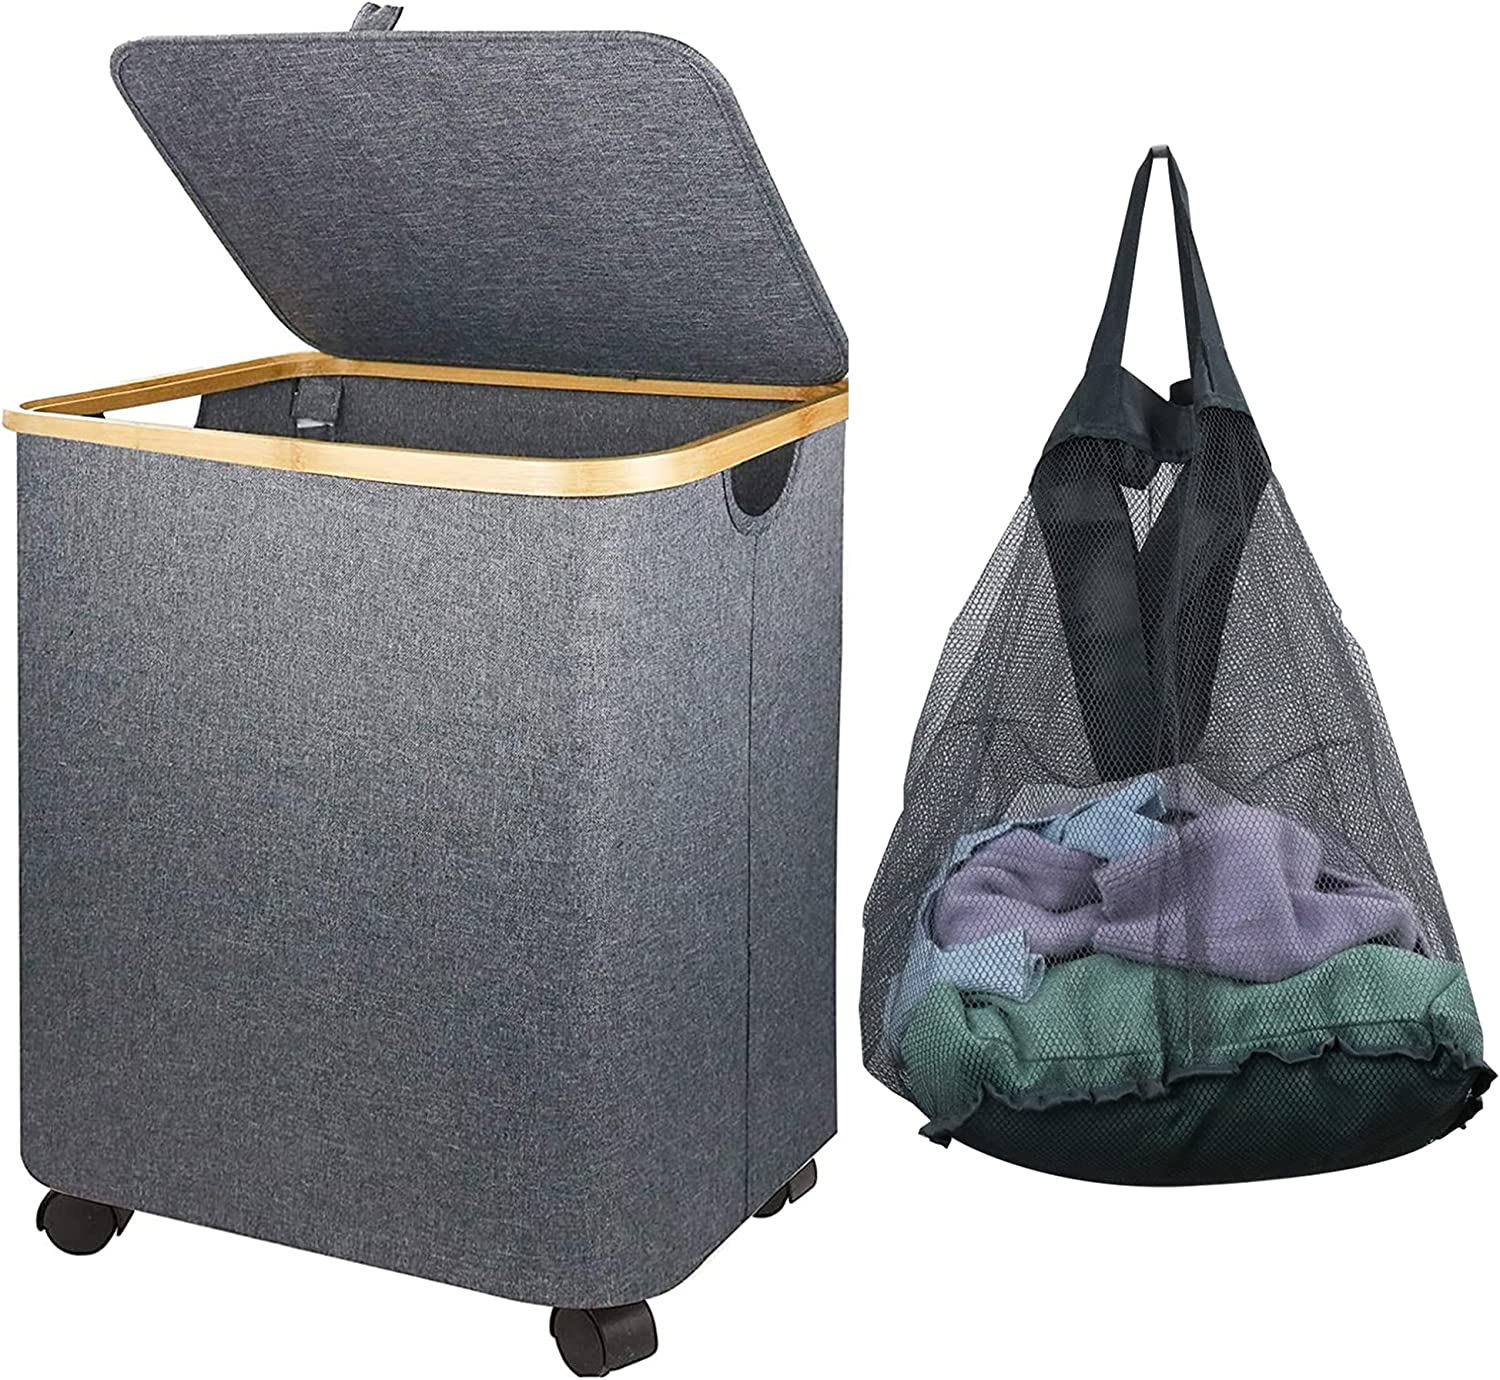 Large Free shipping New Laundry Hamper with Removable Mesh Guofa Bamboo L 79L Bag Direct store